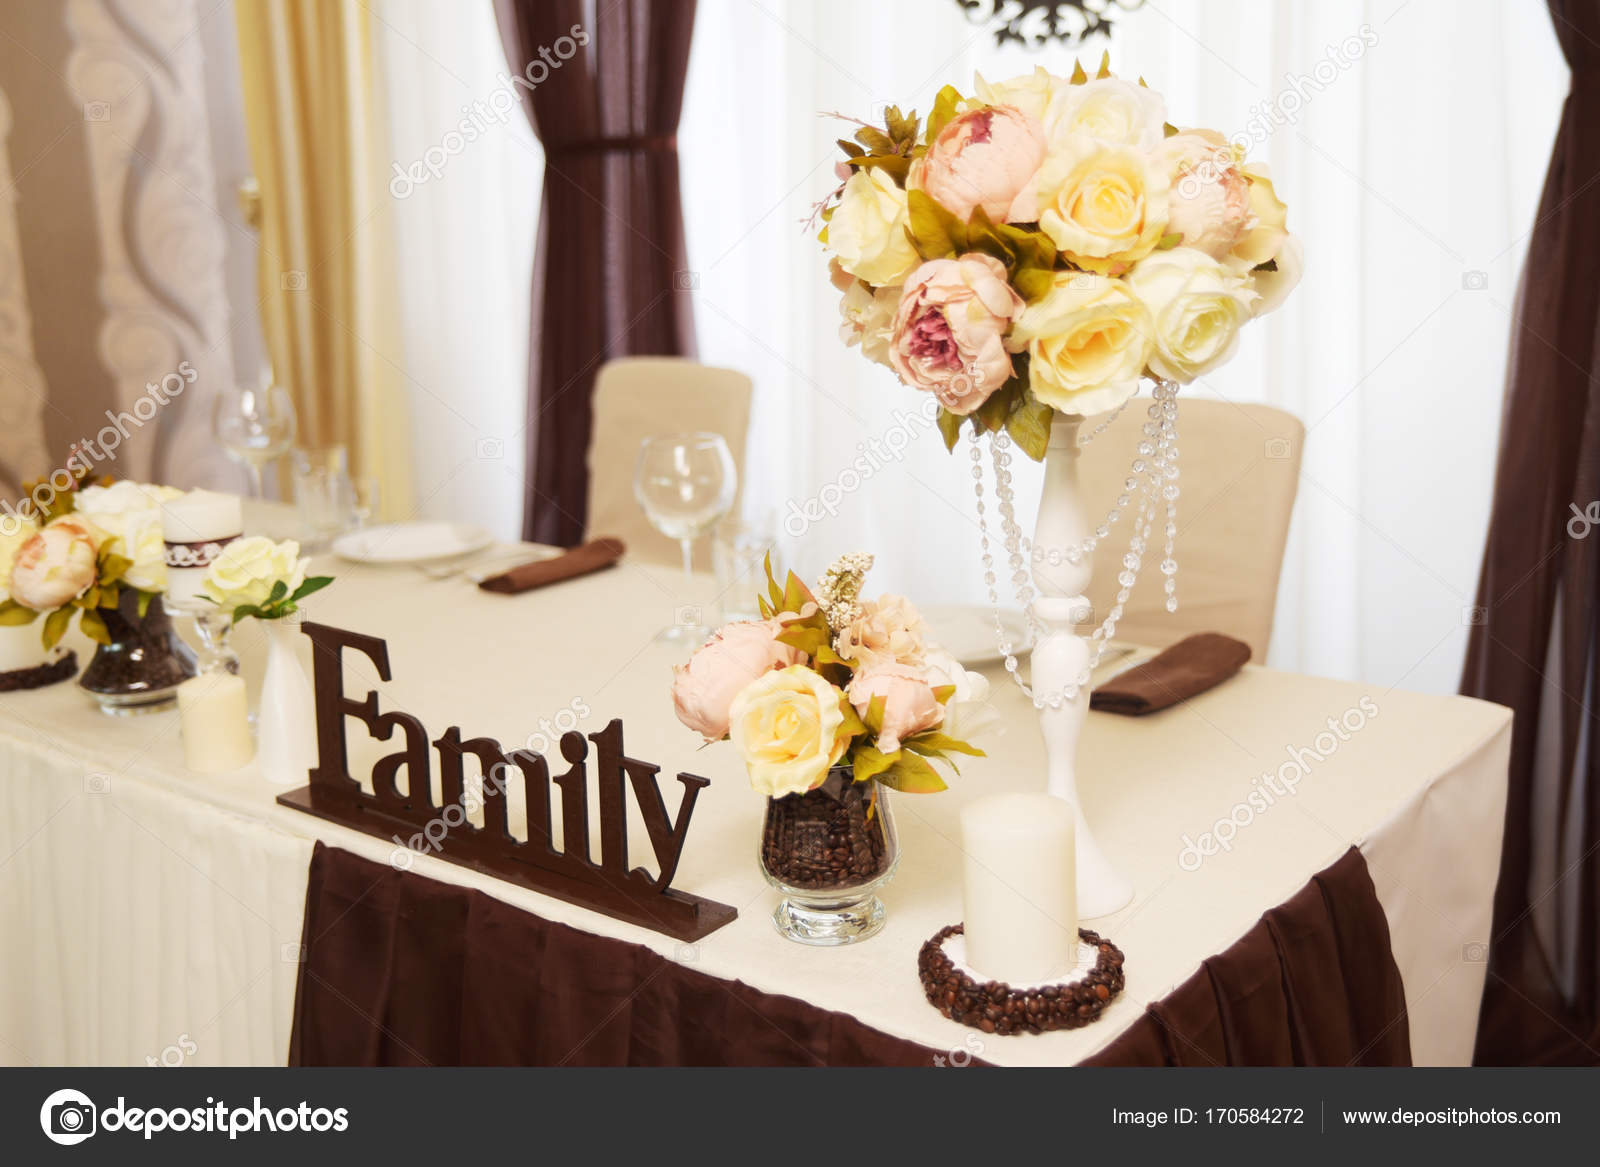 Wedding Decorations Flowers And Coffee Beans Stock Photo